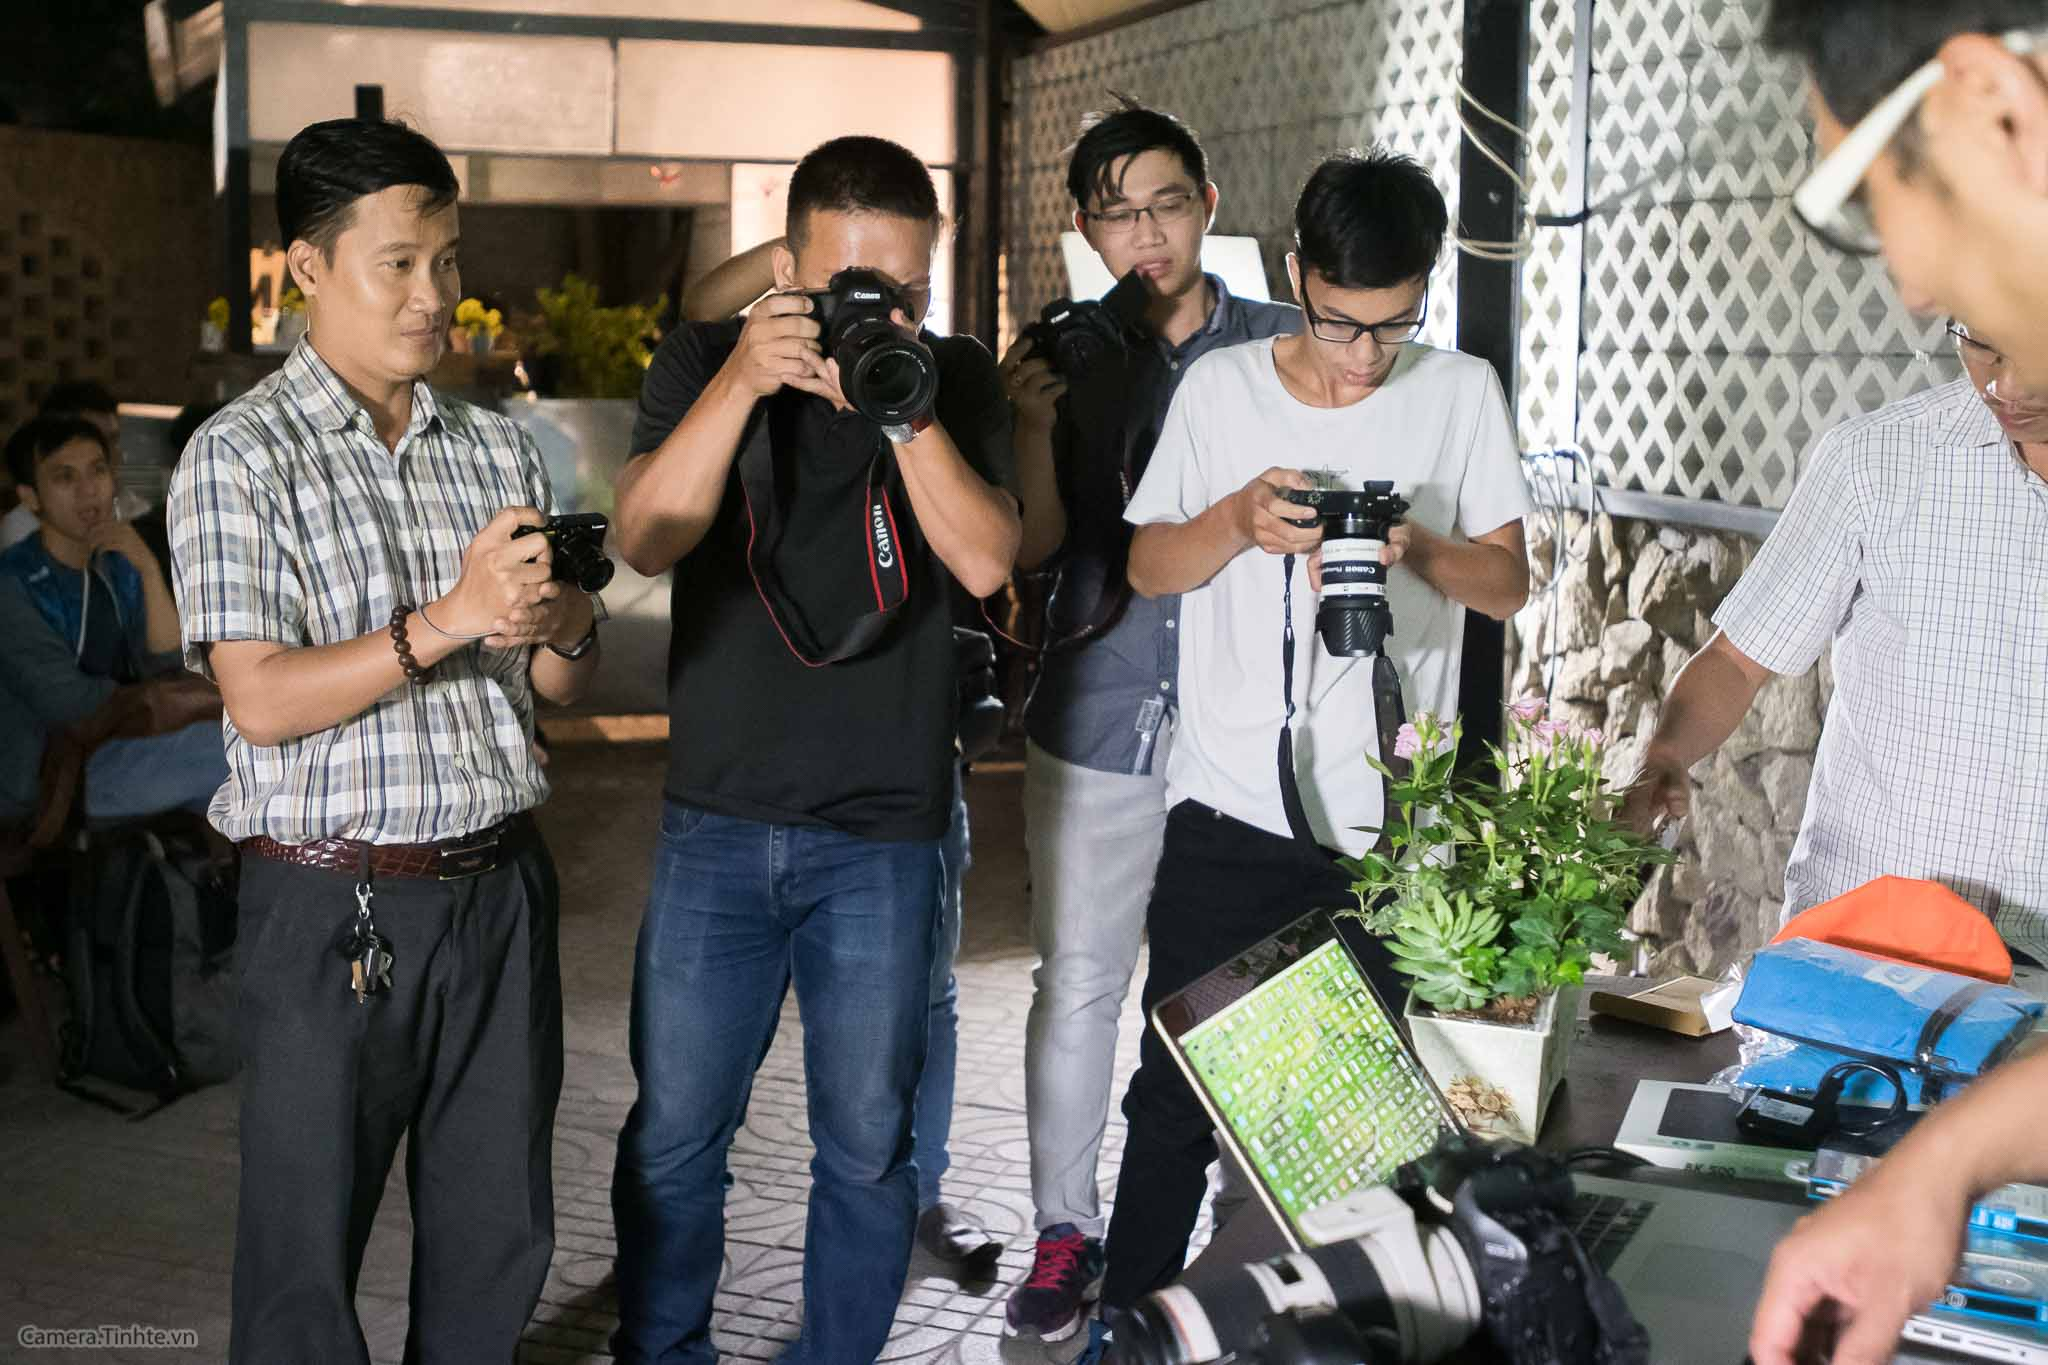 Workshop chup anh the thao - Camera.tinhte.vn-9.jpg